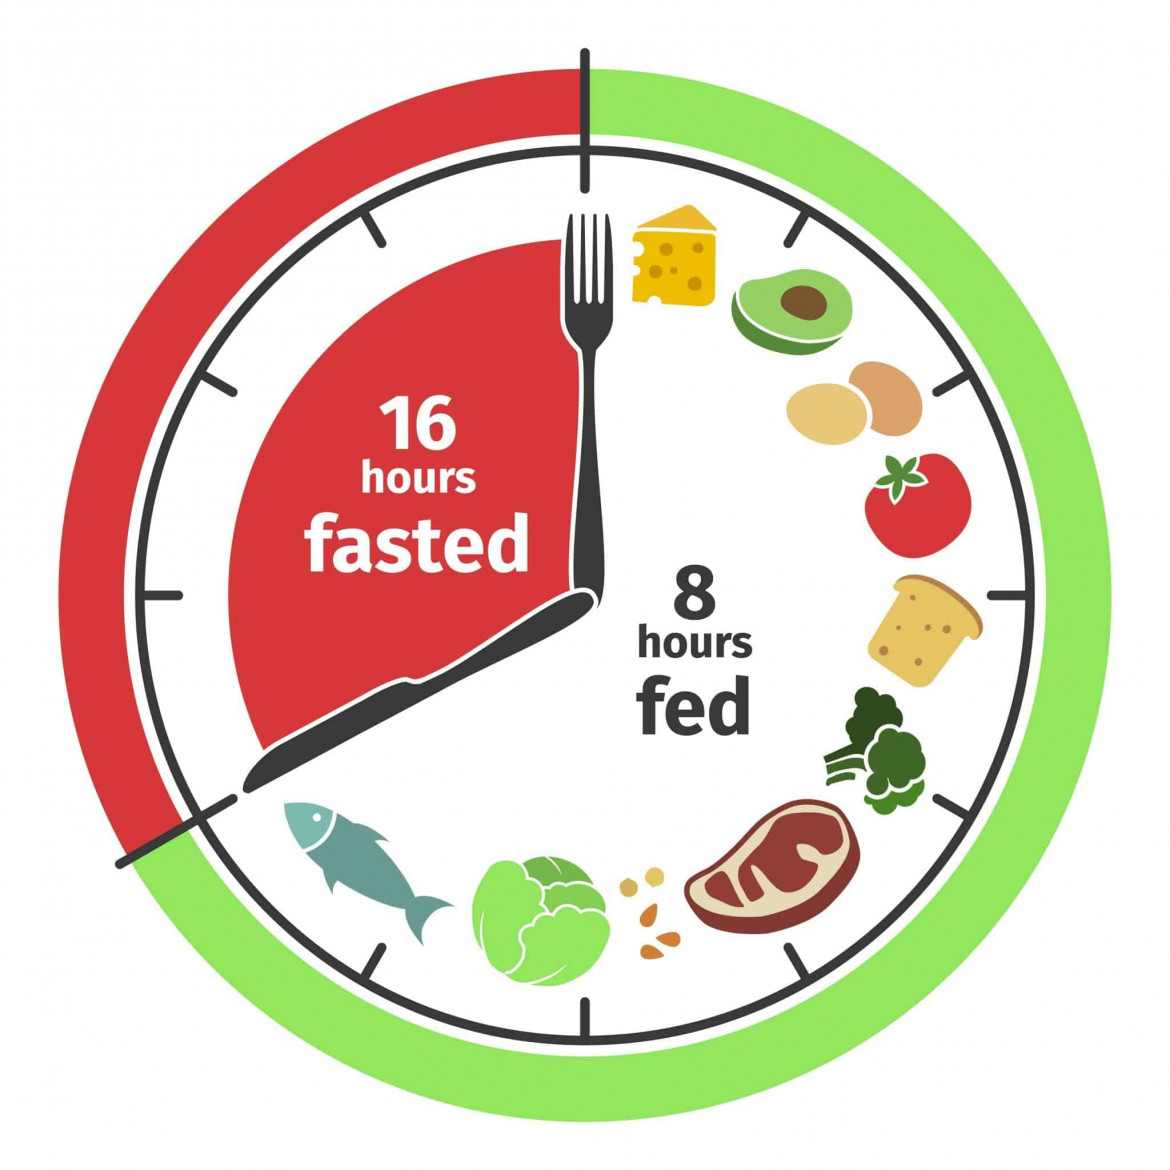 5 Benefits of Intermittent Fasting for Your Health